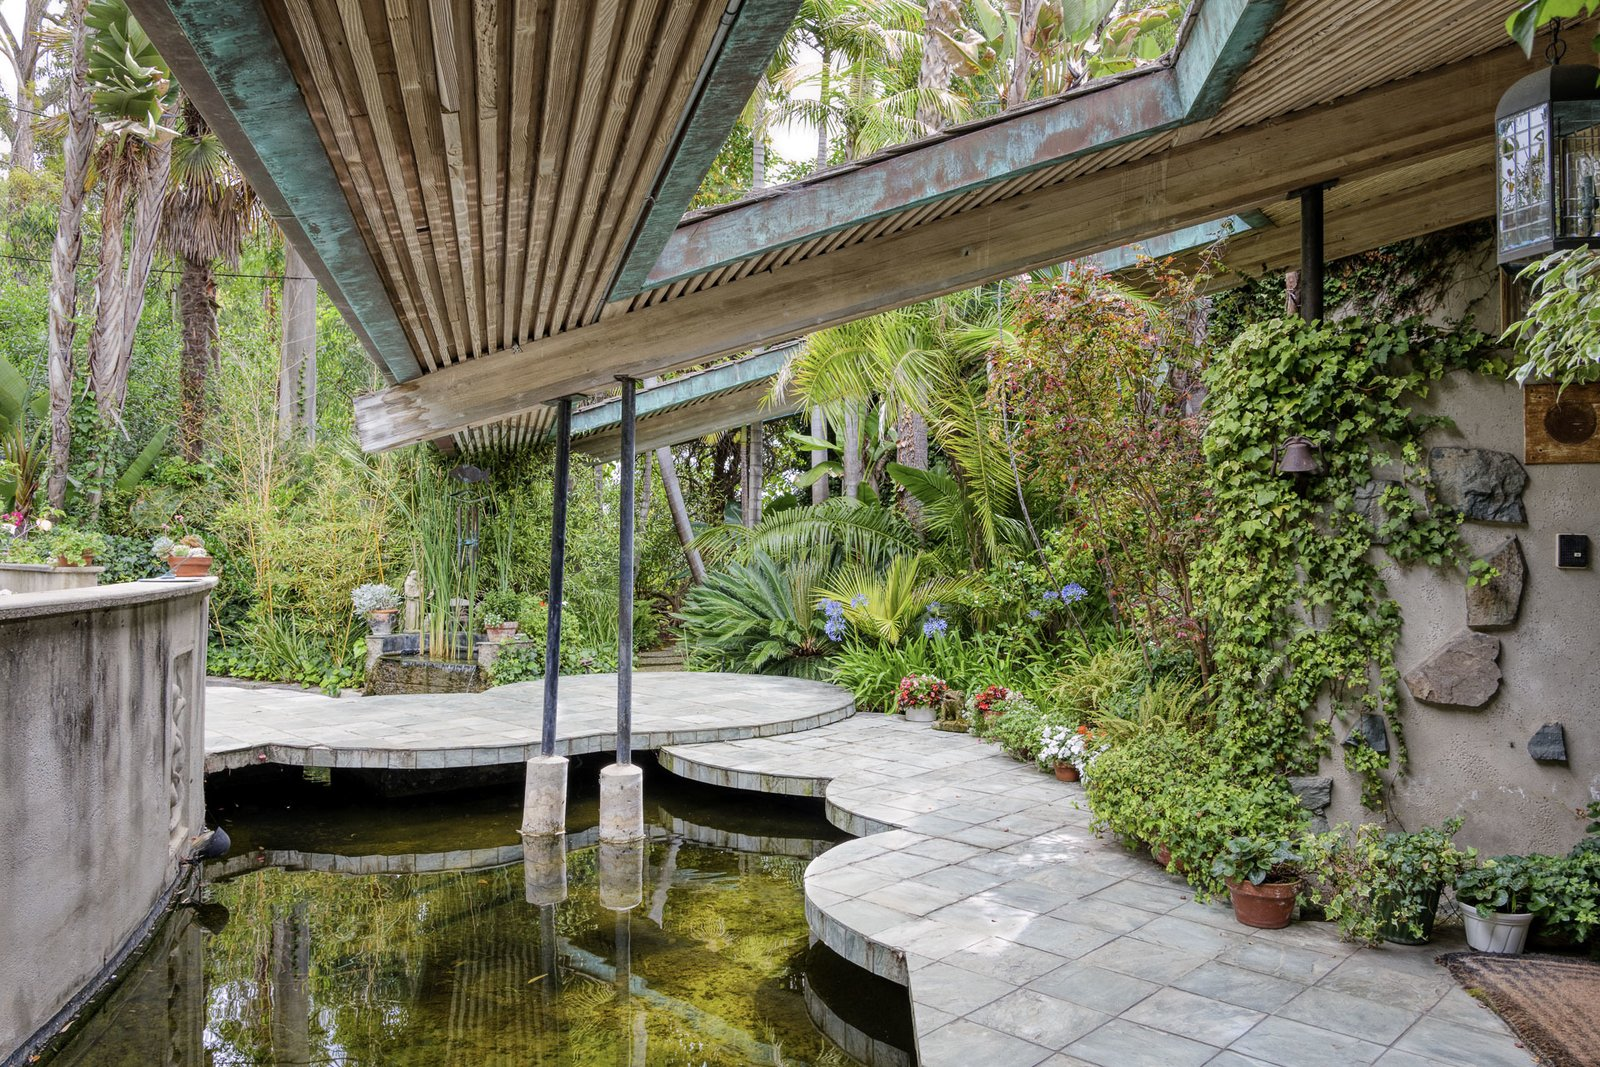 Outdoor, Trees, Back Yard, Small Pools, Tubs, Shower, and Shrubs At 19 years old, Jon P. Antelline designed the Fred Antelline House, using circular geometry to define the floor plan and landscaping. A walkway to the main entrance is framed by cutouts in the roof overhang, along with overlapping concrete slabs surrounding a water feature.  Photo 2 of 16 in A One-of-a-Kind Midcentury Modern Has Resurfaced on the Market to the Tune of $3.5M